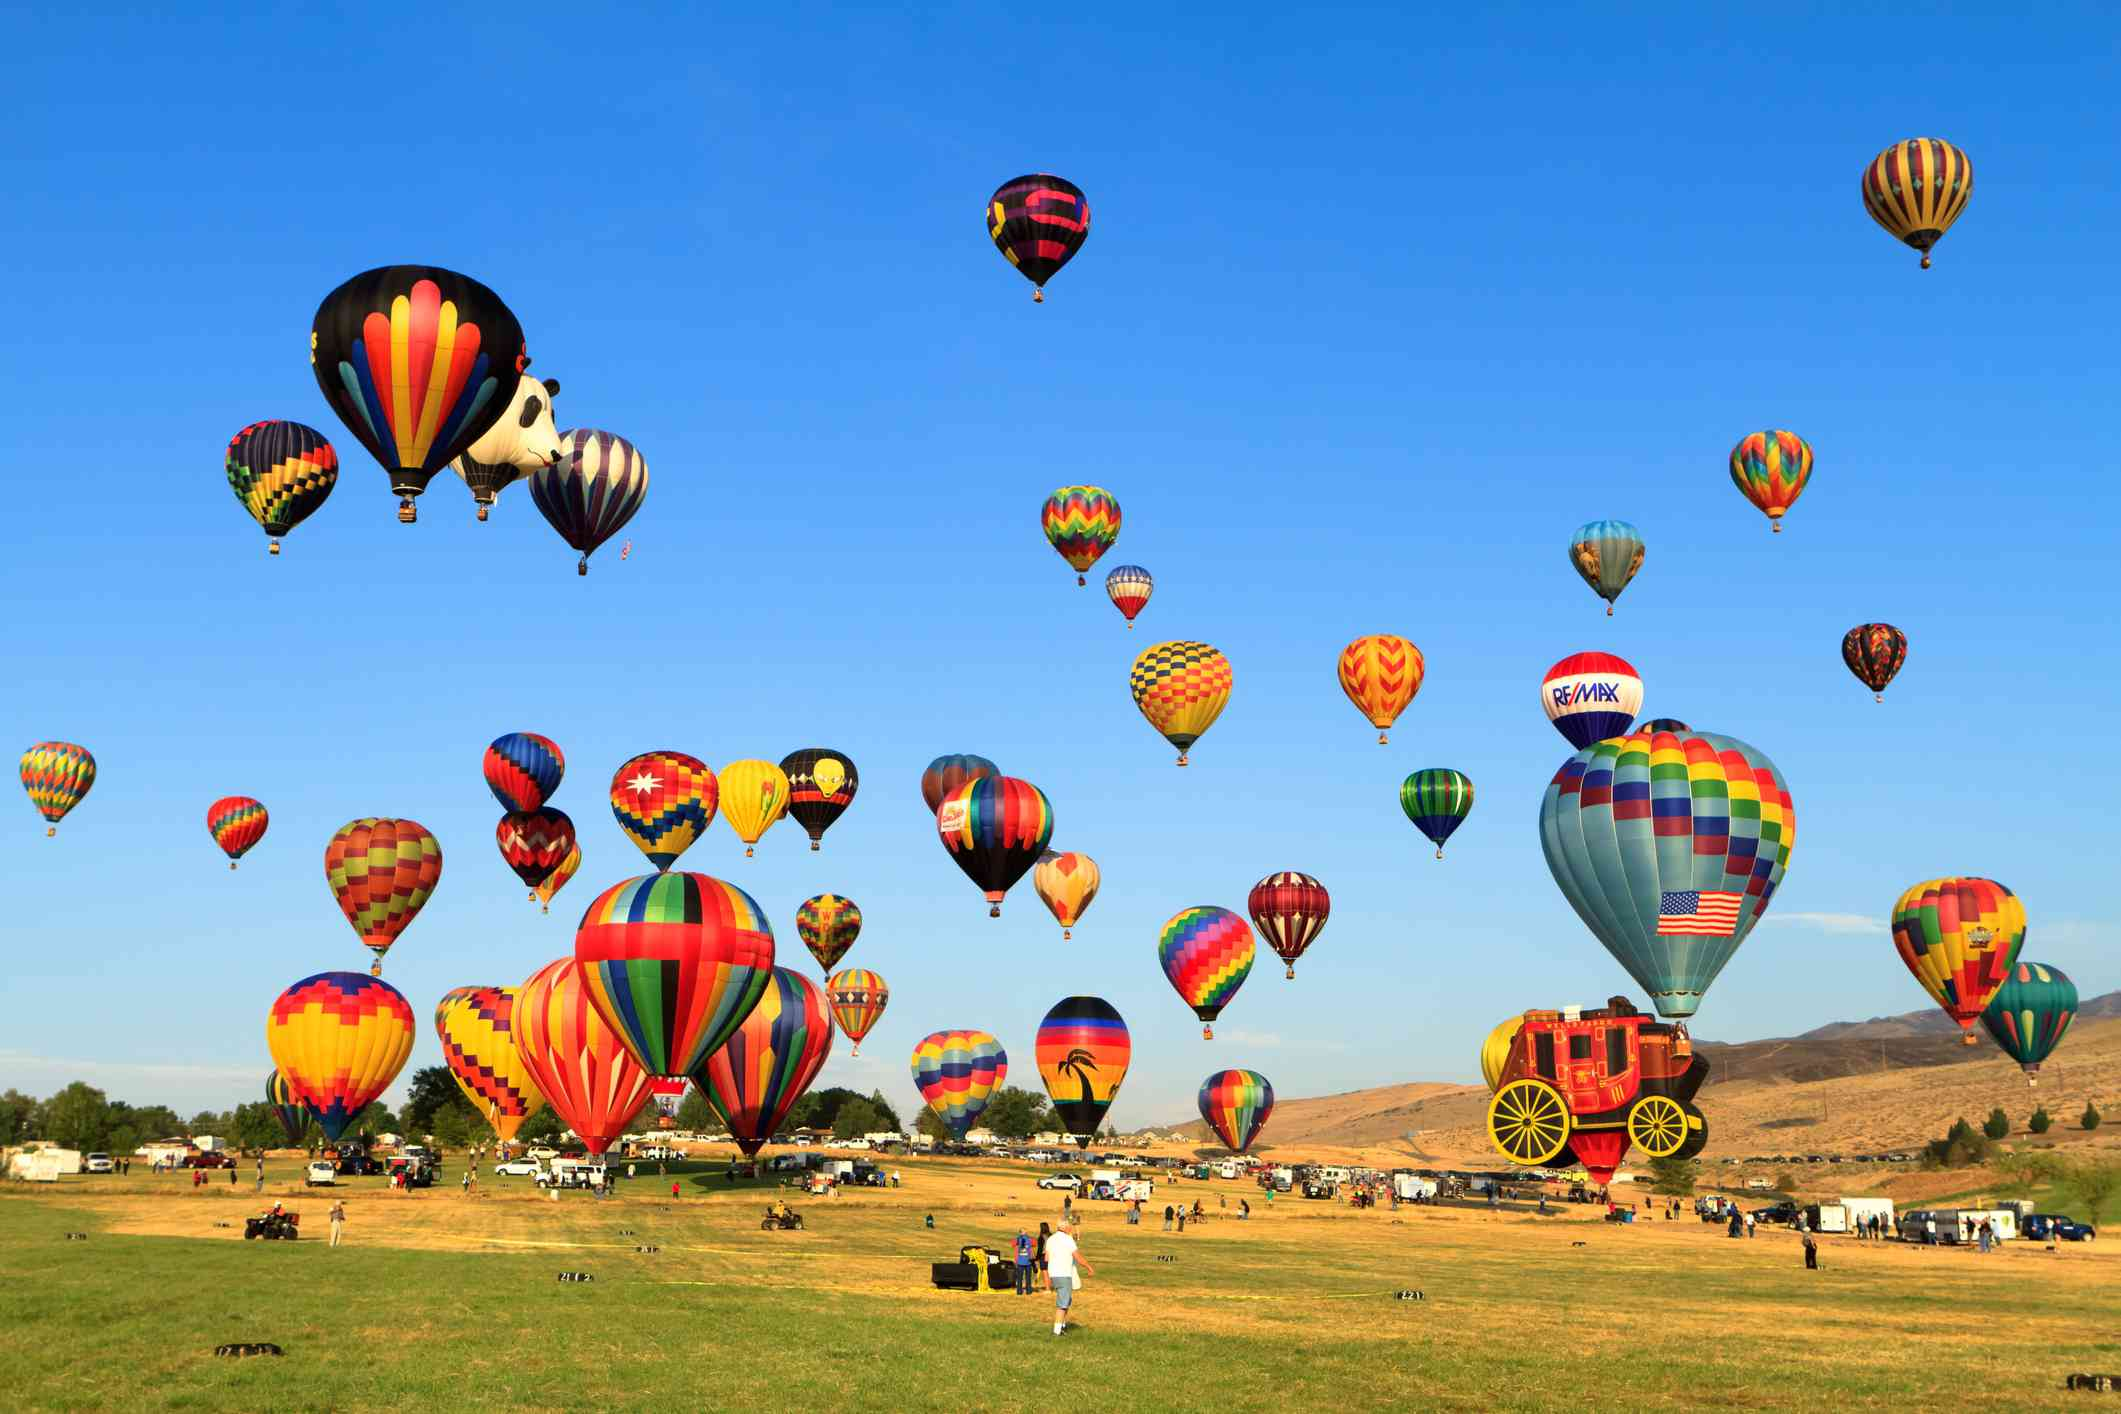 field near Reno, Nevada with dozens of colorful hot air balloons